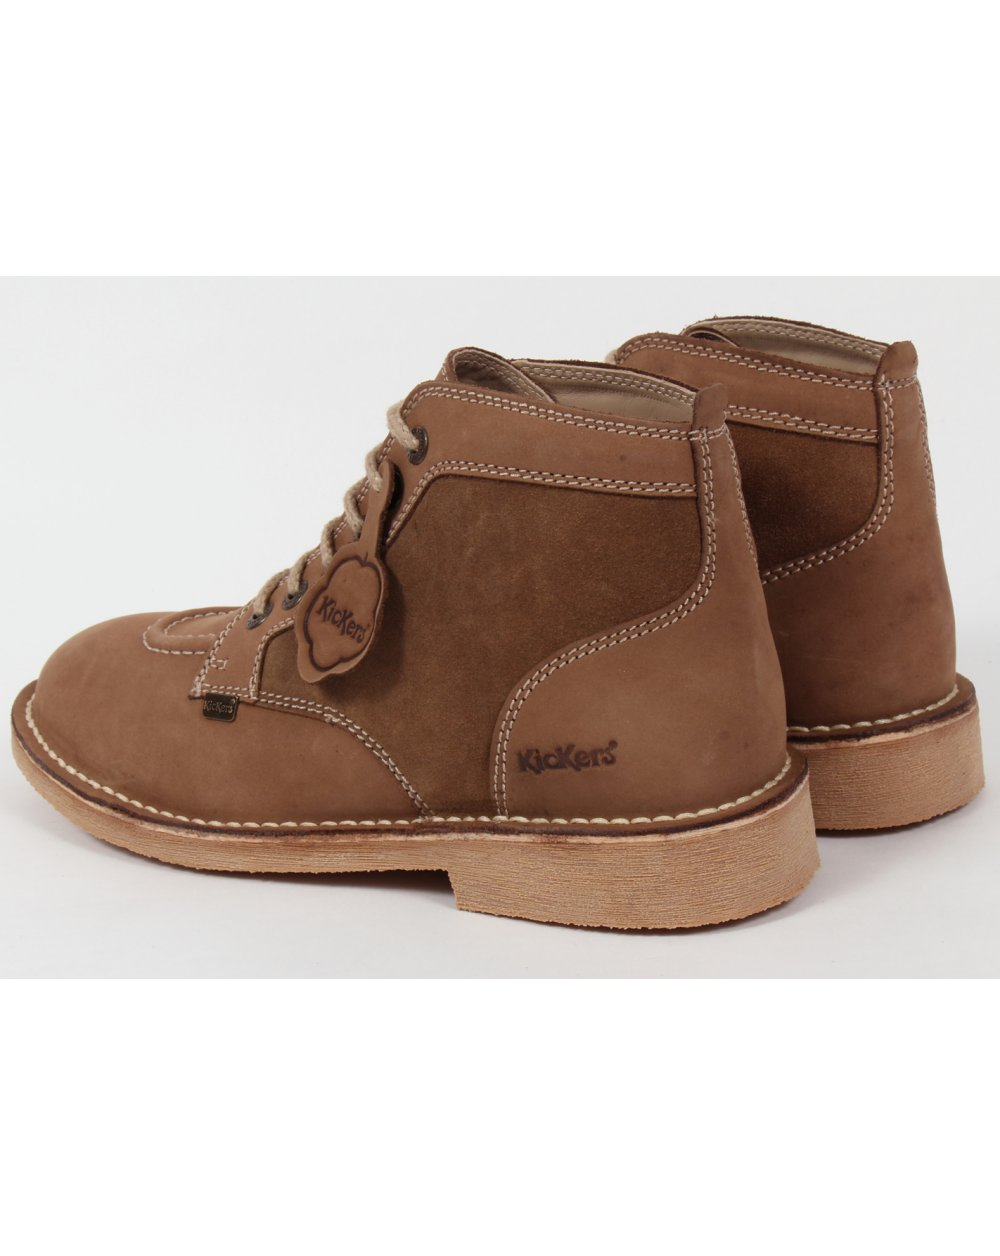 Women's Dixie Ankle Boots by Classique, Brown, Size 7. Shoes by Classique. Comes in Brown, Size 7 M. Faux suede ankle boots with a faux snake buckle strap for a western attitude. Inside zipper for easy on/off. Rubber-blend outsole with 1 heel. Manmade. Imported. Material: Man Made Materials.